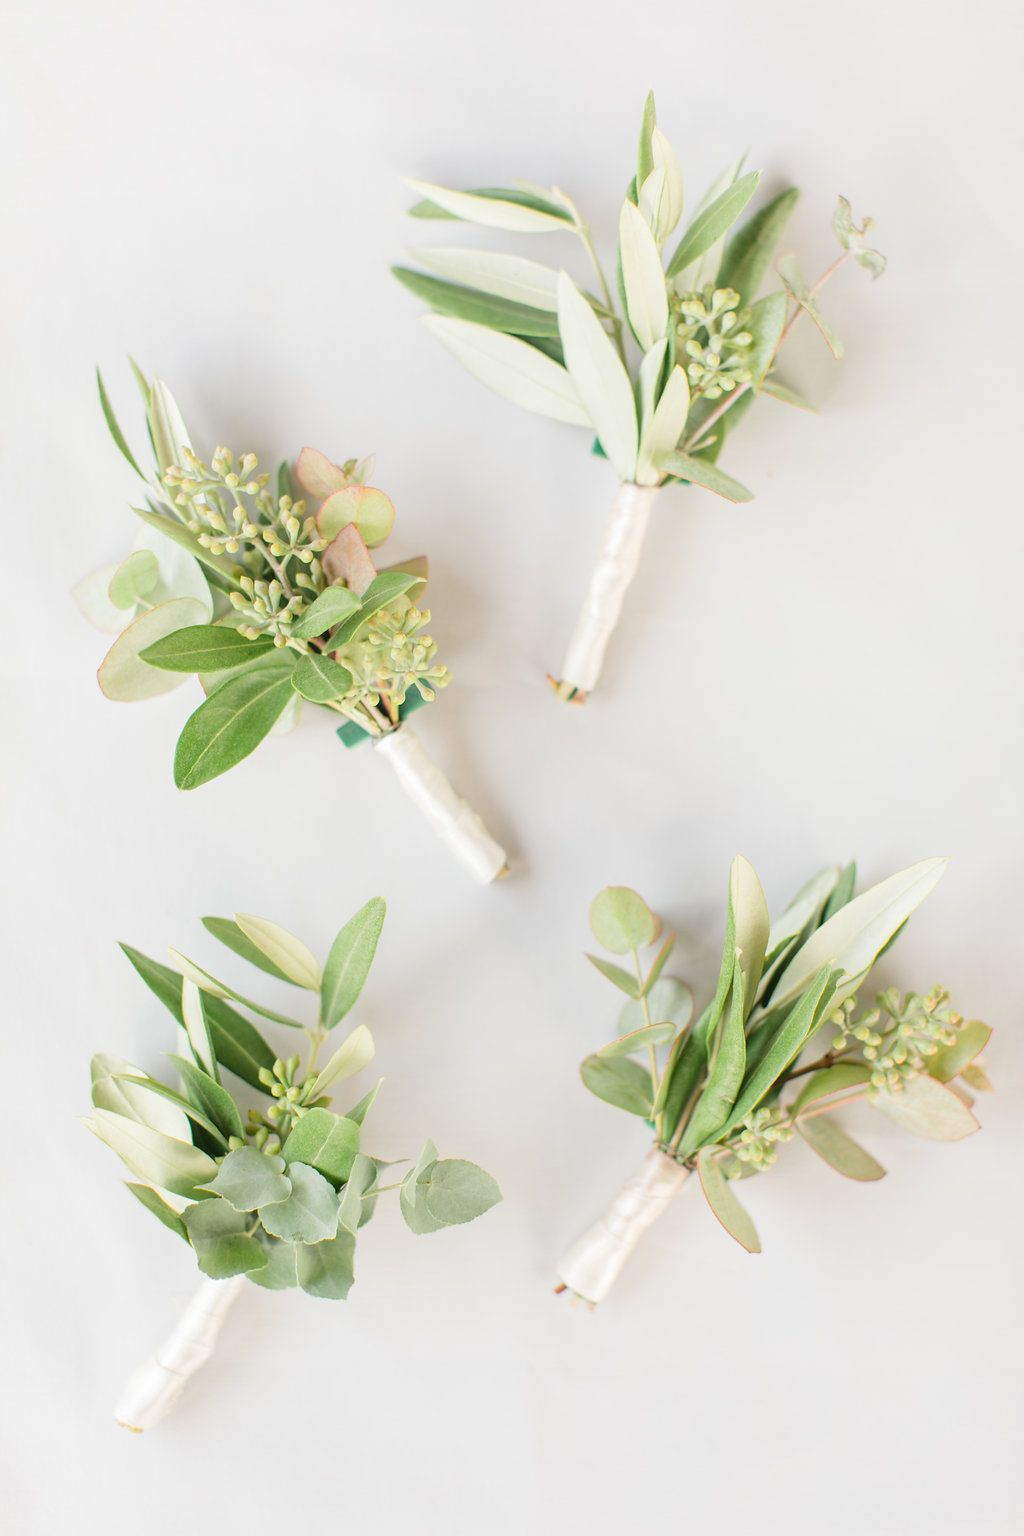 Beautiful italian olive branch boutonnieres for a wedding